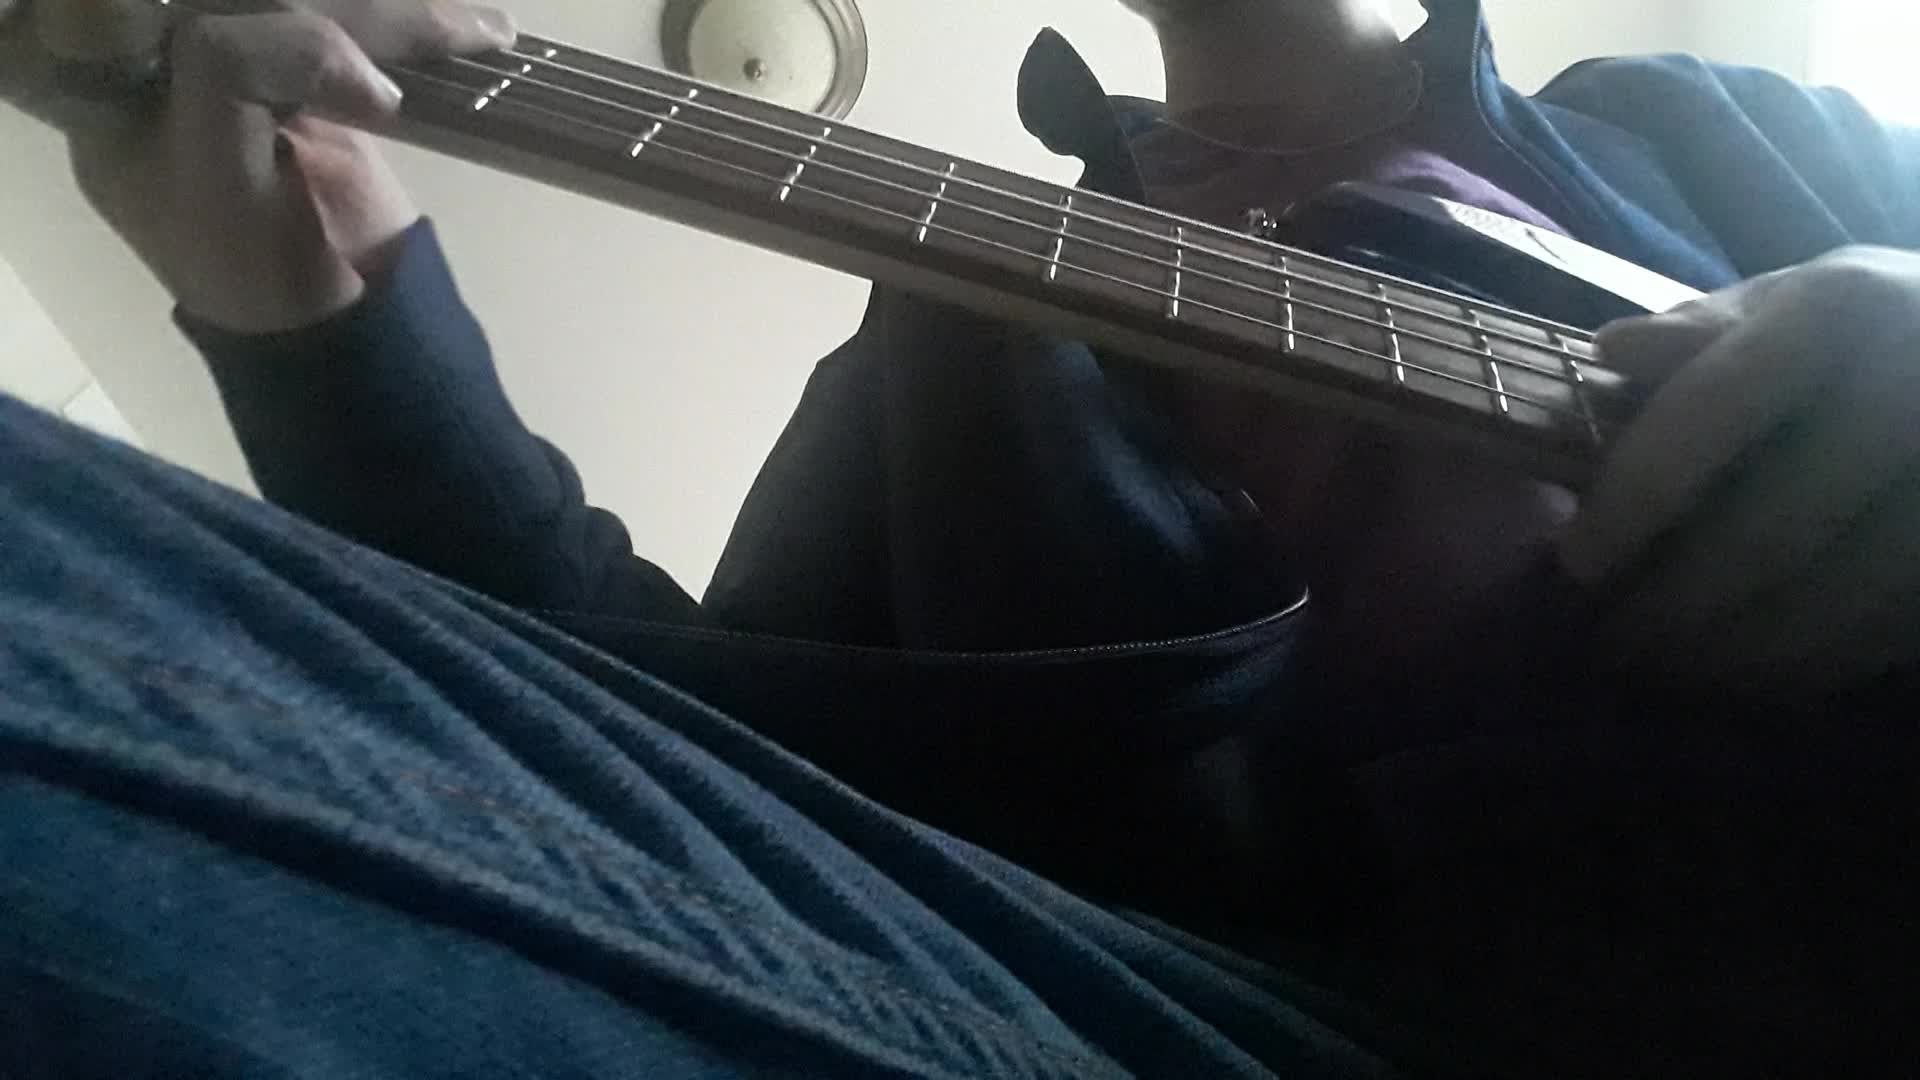 Entertainment: Music - I tried to play a little bit of shotgun by george ezra on the bass (well the bass line at least) video cover image 0